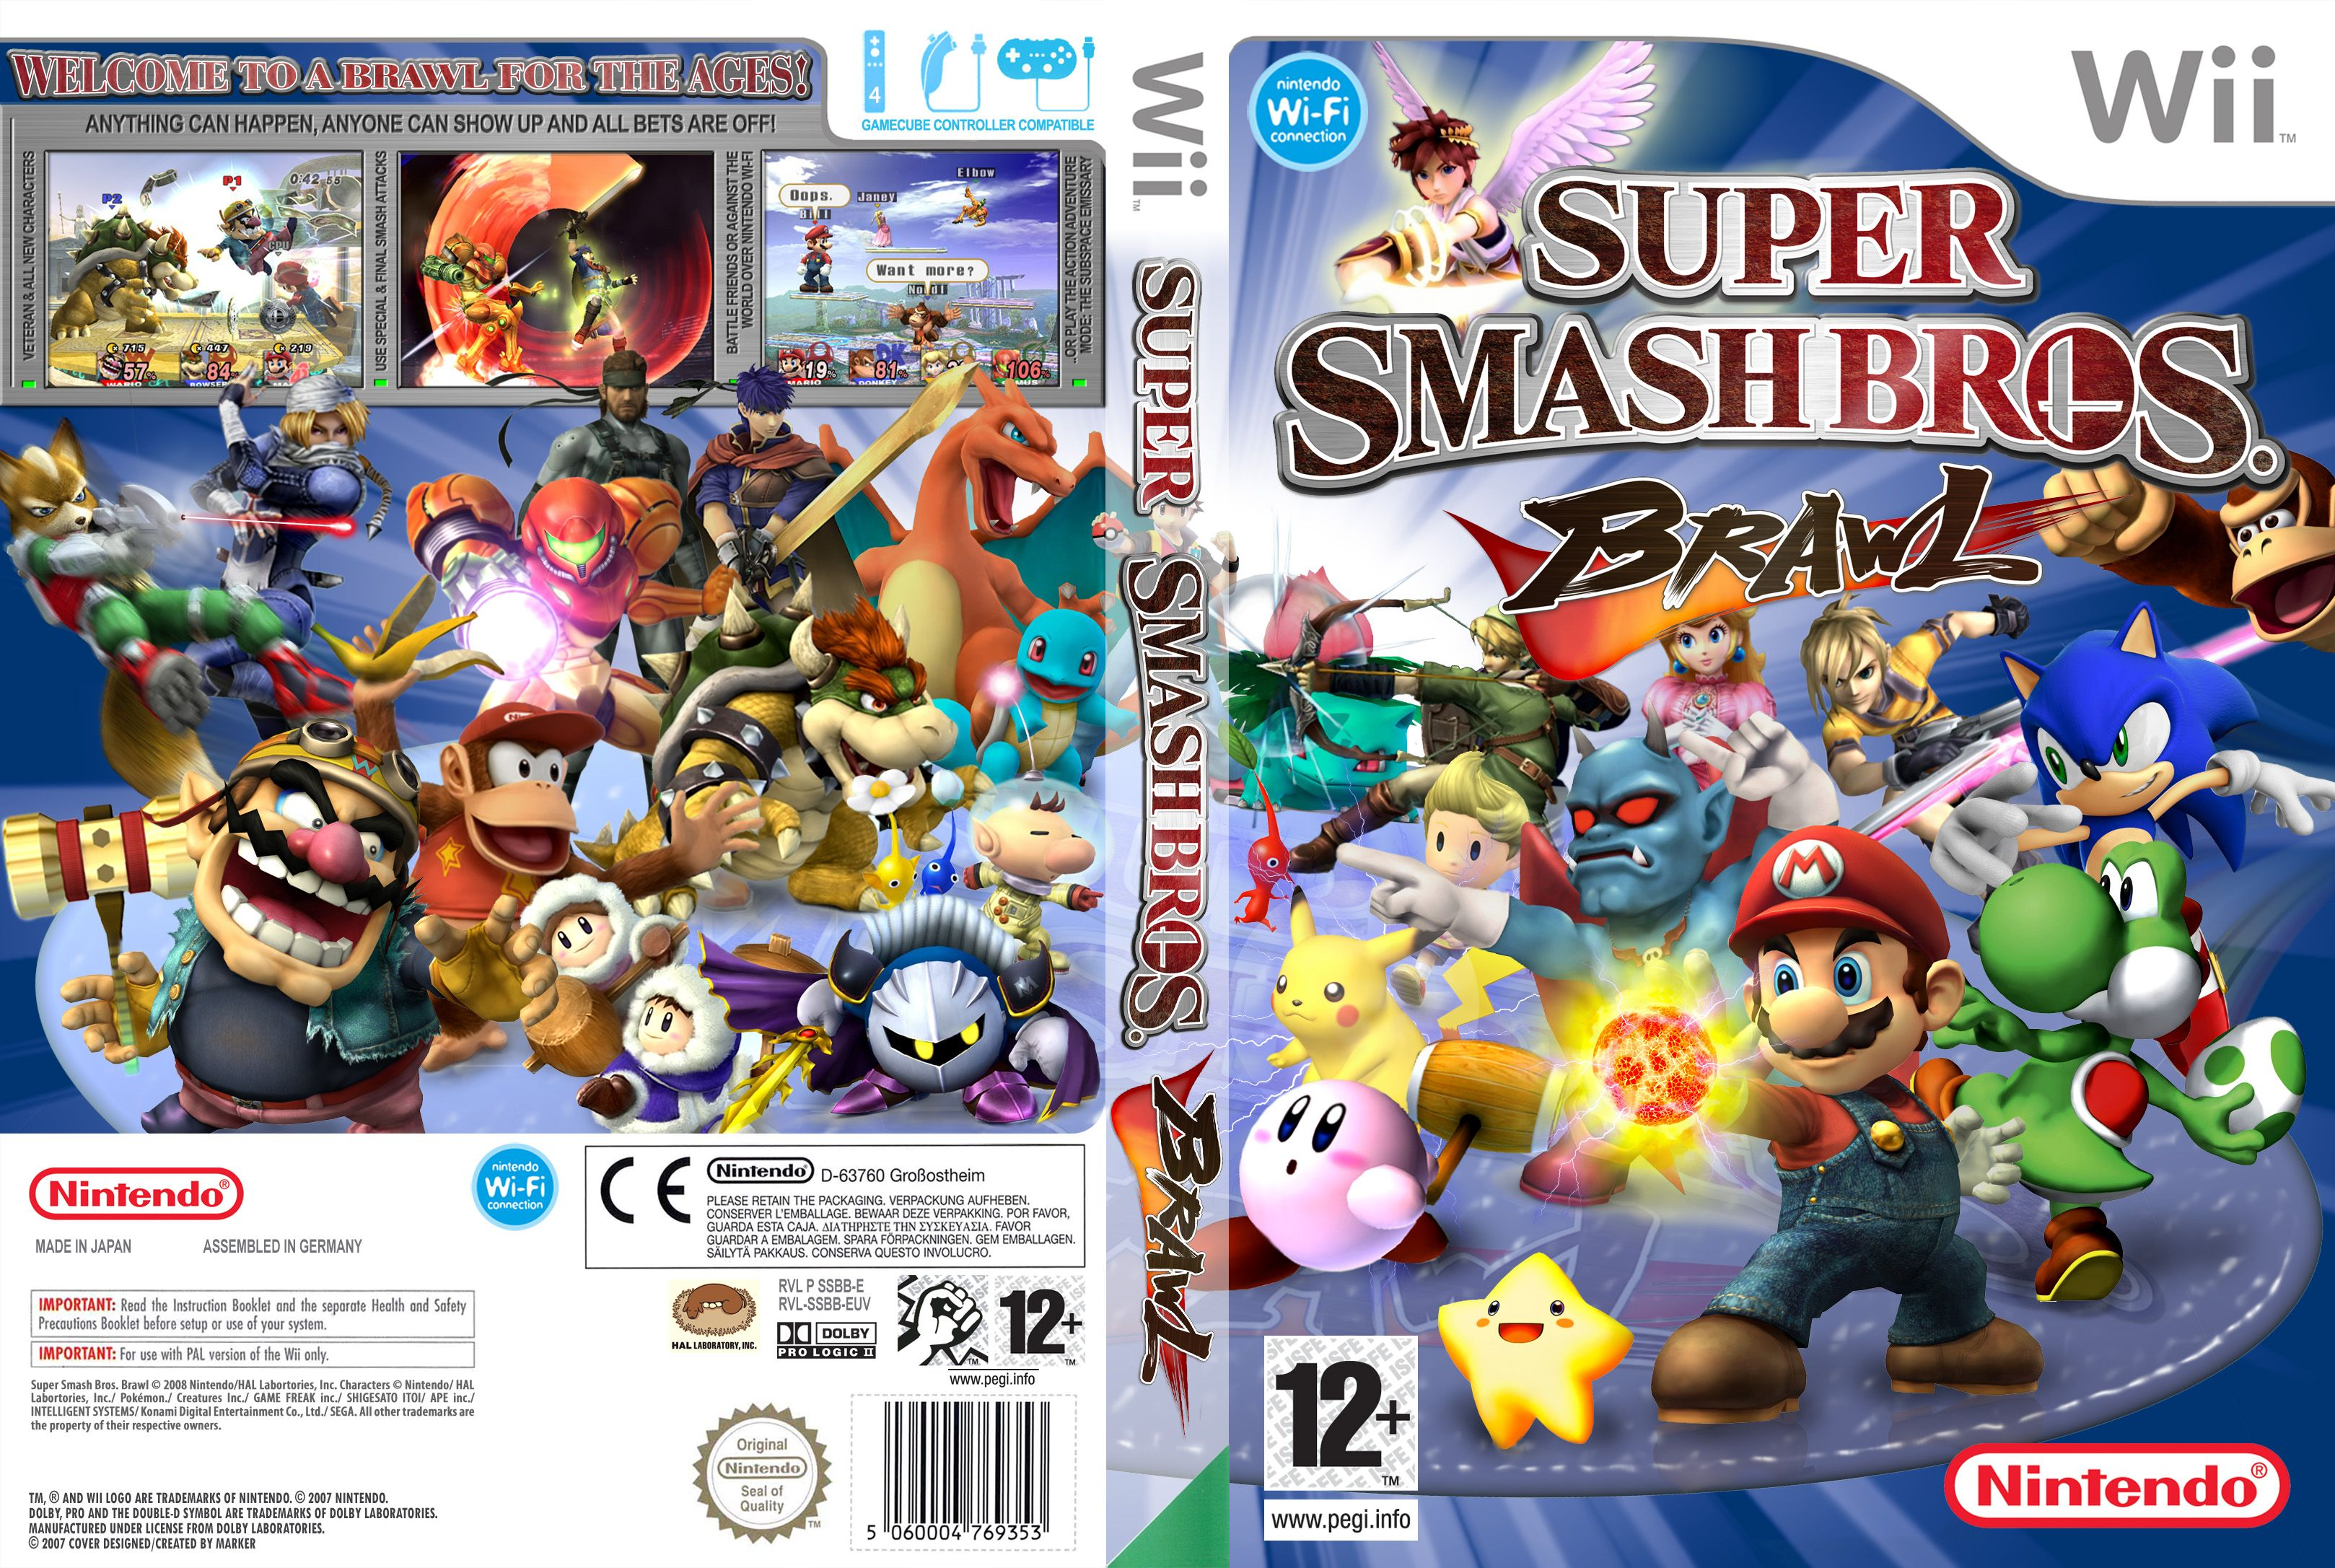 Super smash bros brawl game on computer